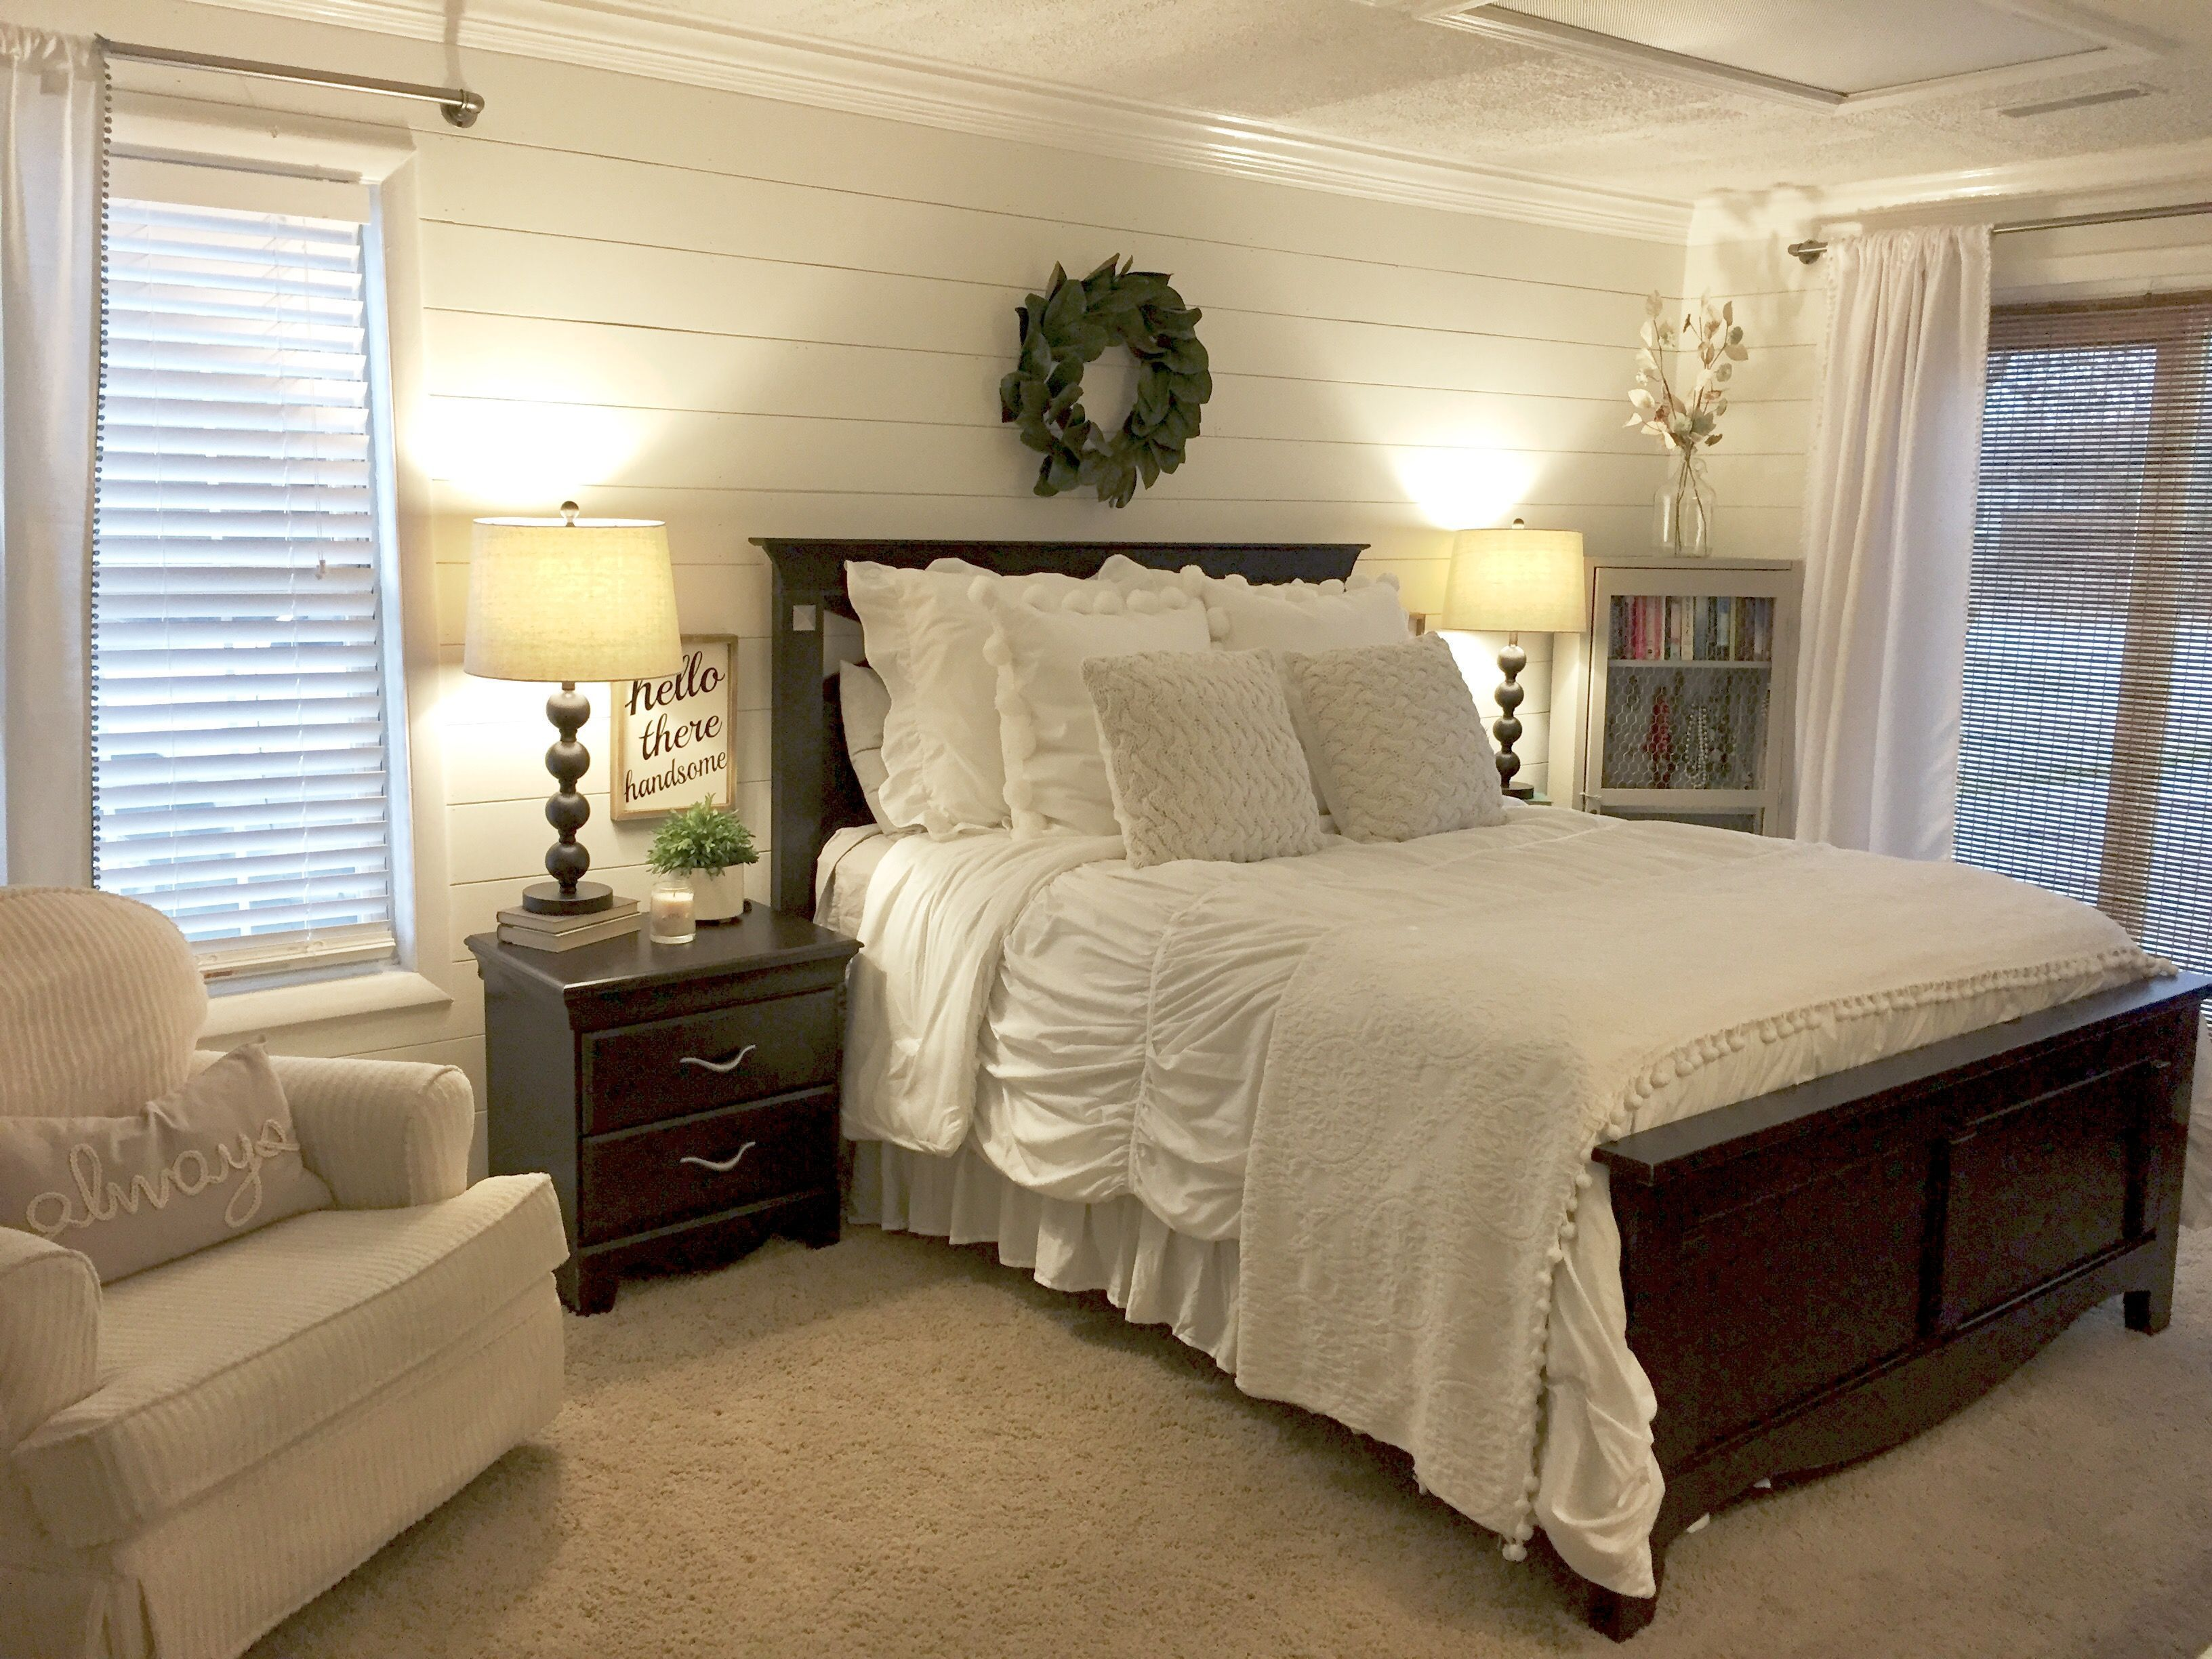 Best Shiplap Bedroom Walls With Farmhouse Charm Magnolia Wreath And Alabaster White Paint 640 x 480